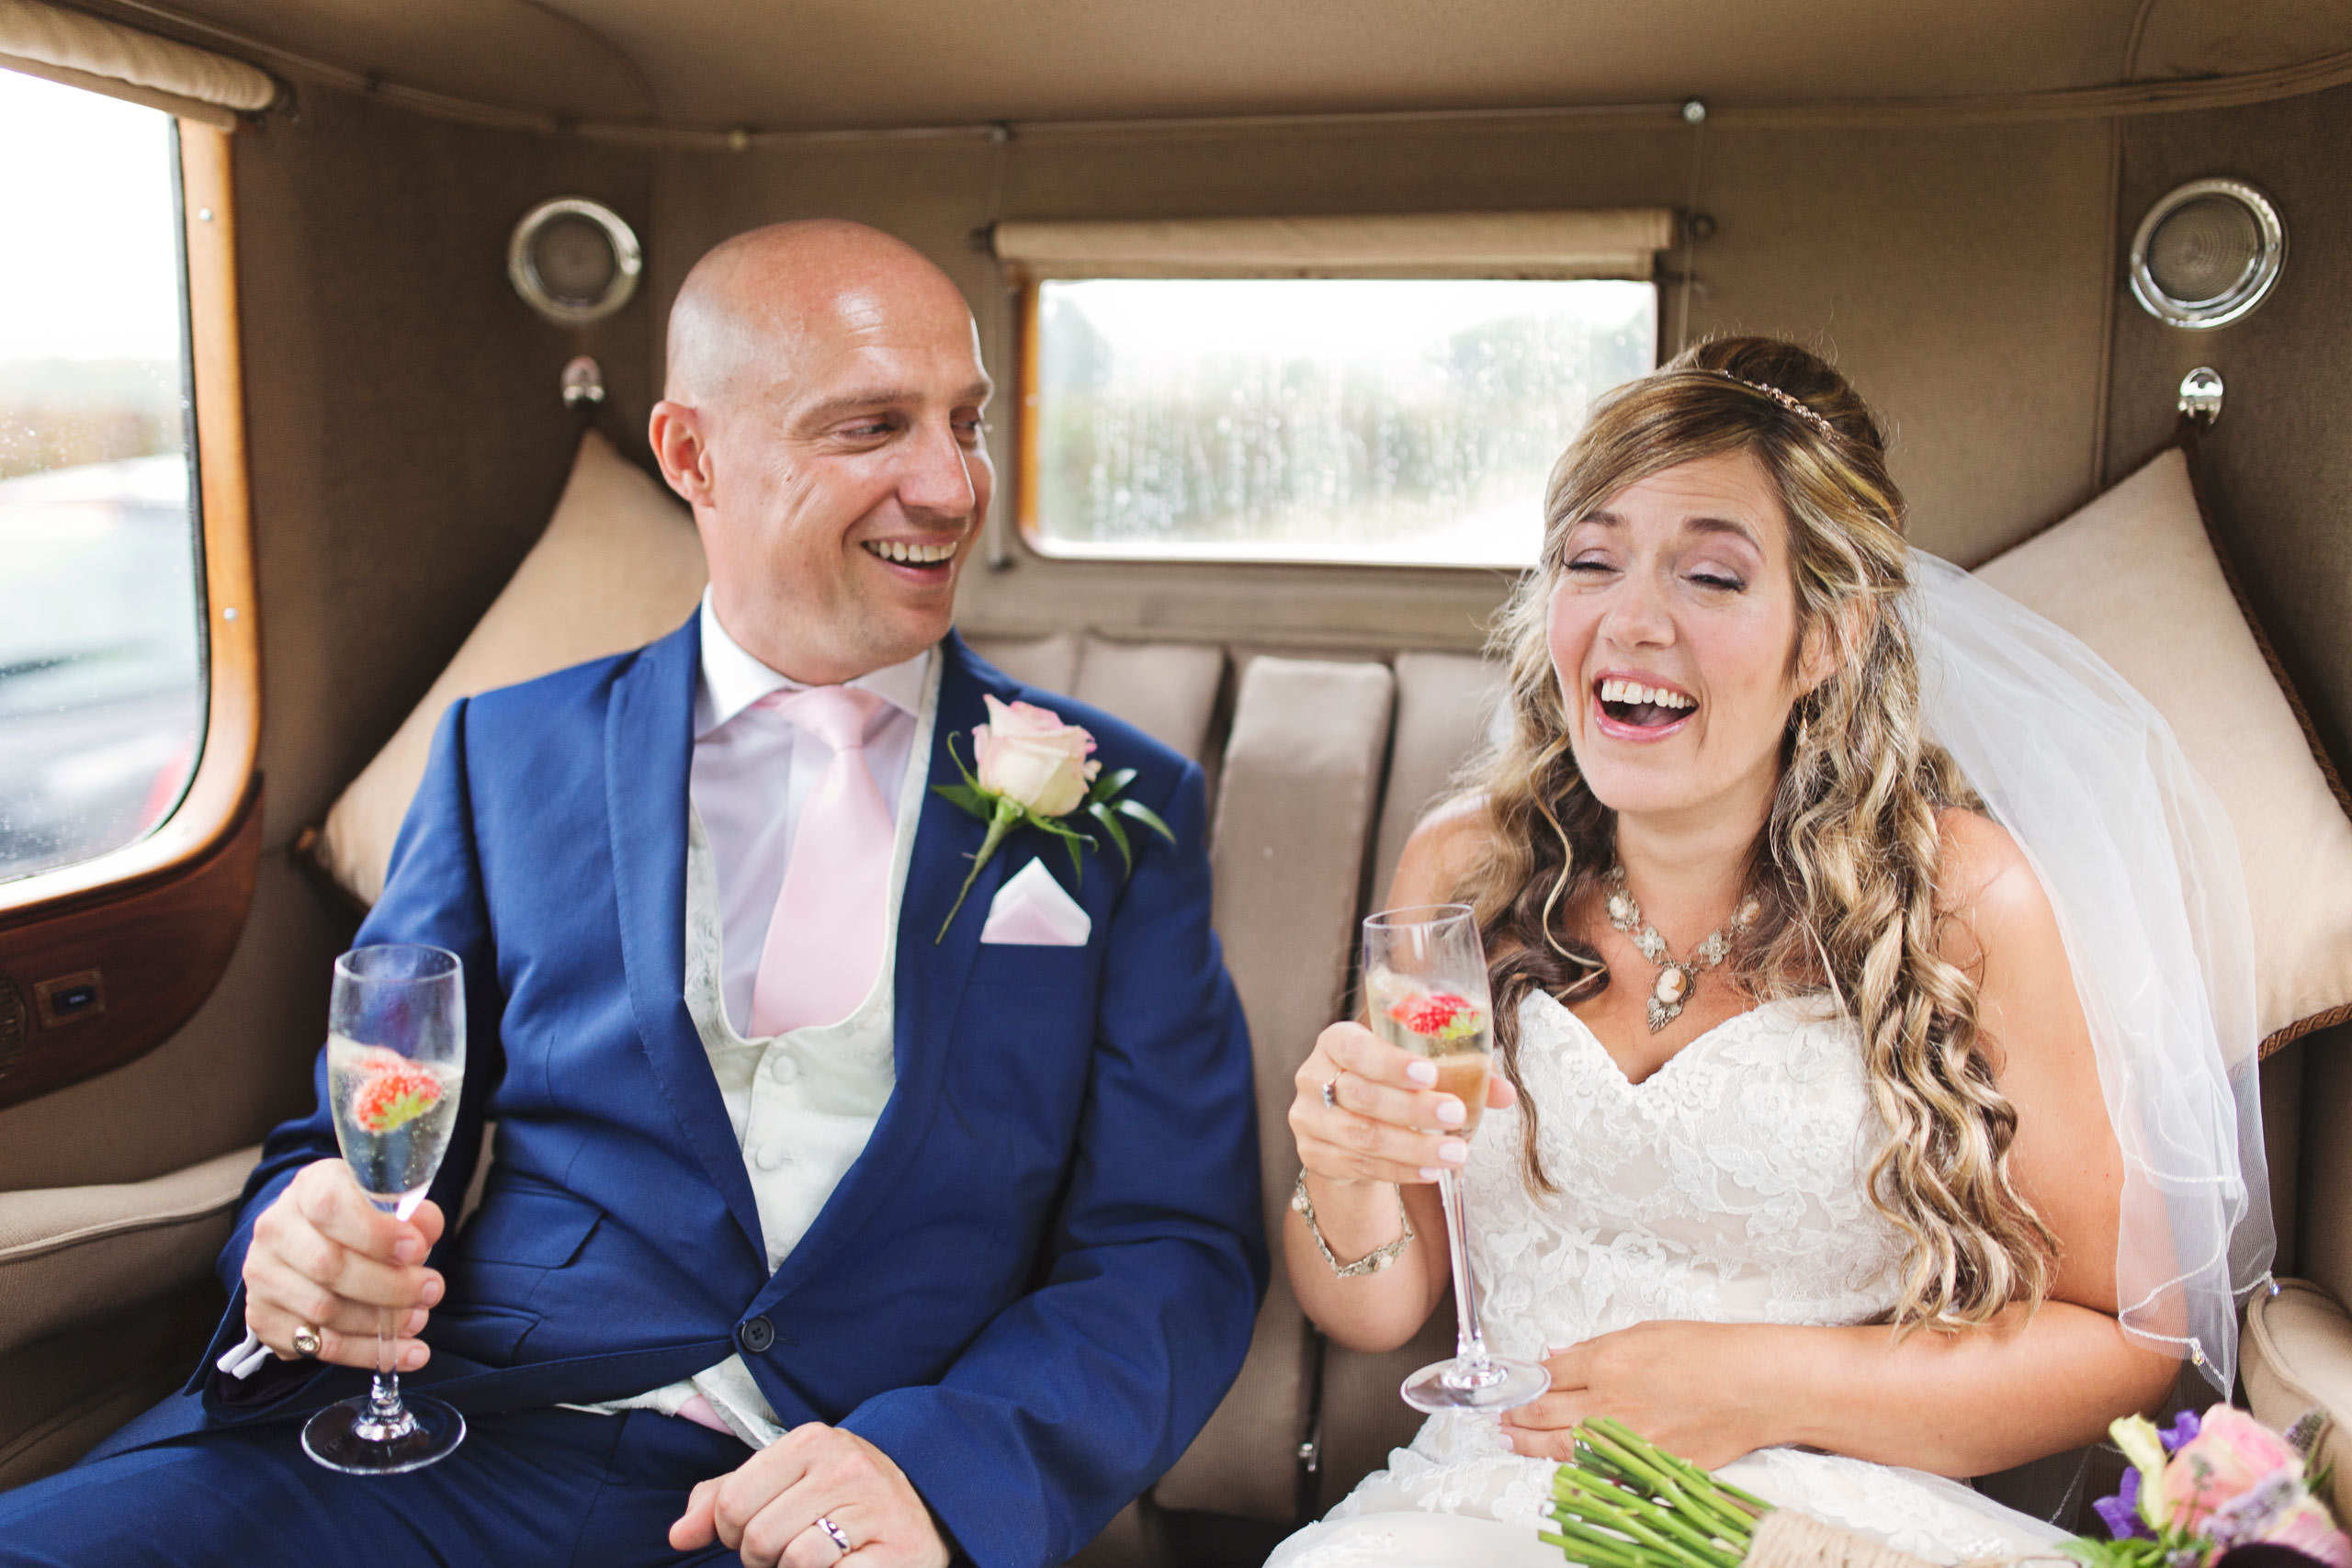 Newlyweds enjoy champagne in the back of a classic wedding car